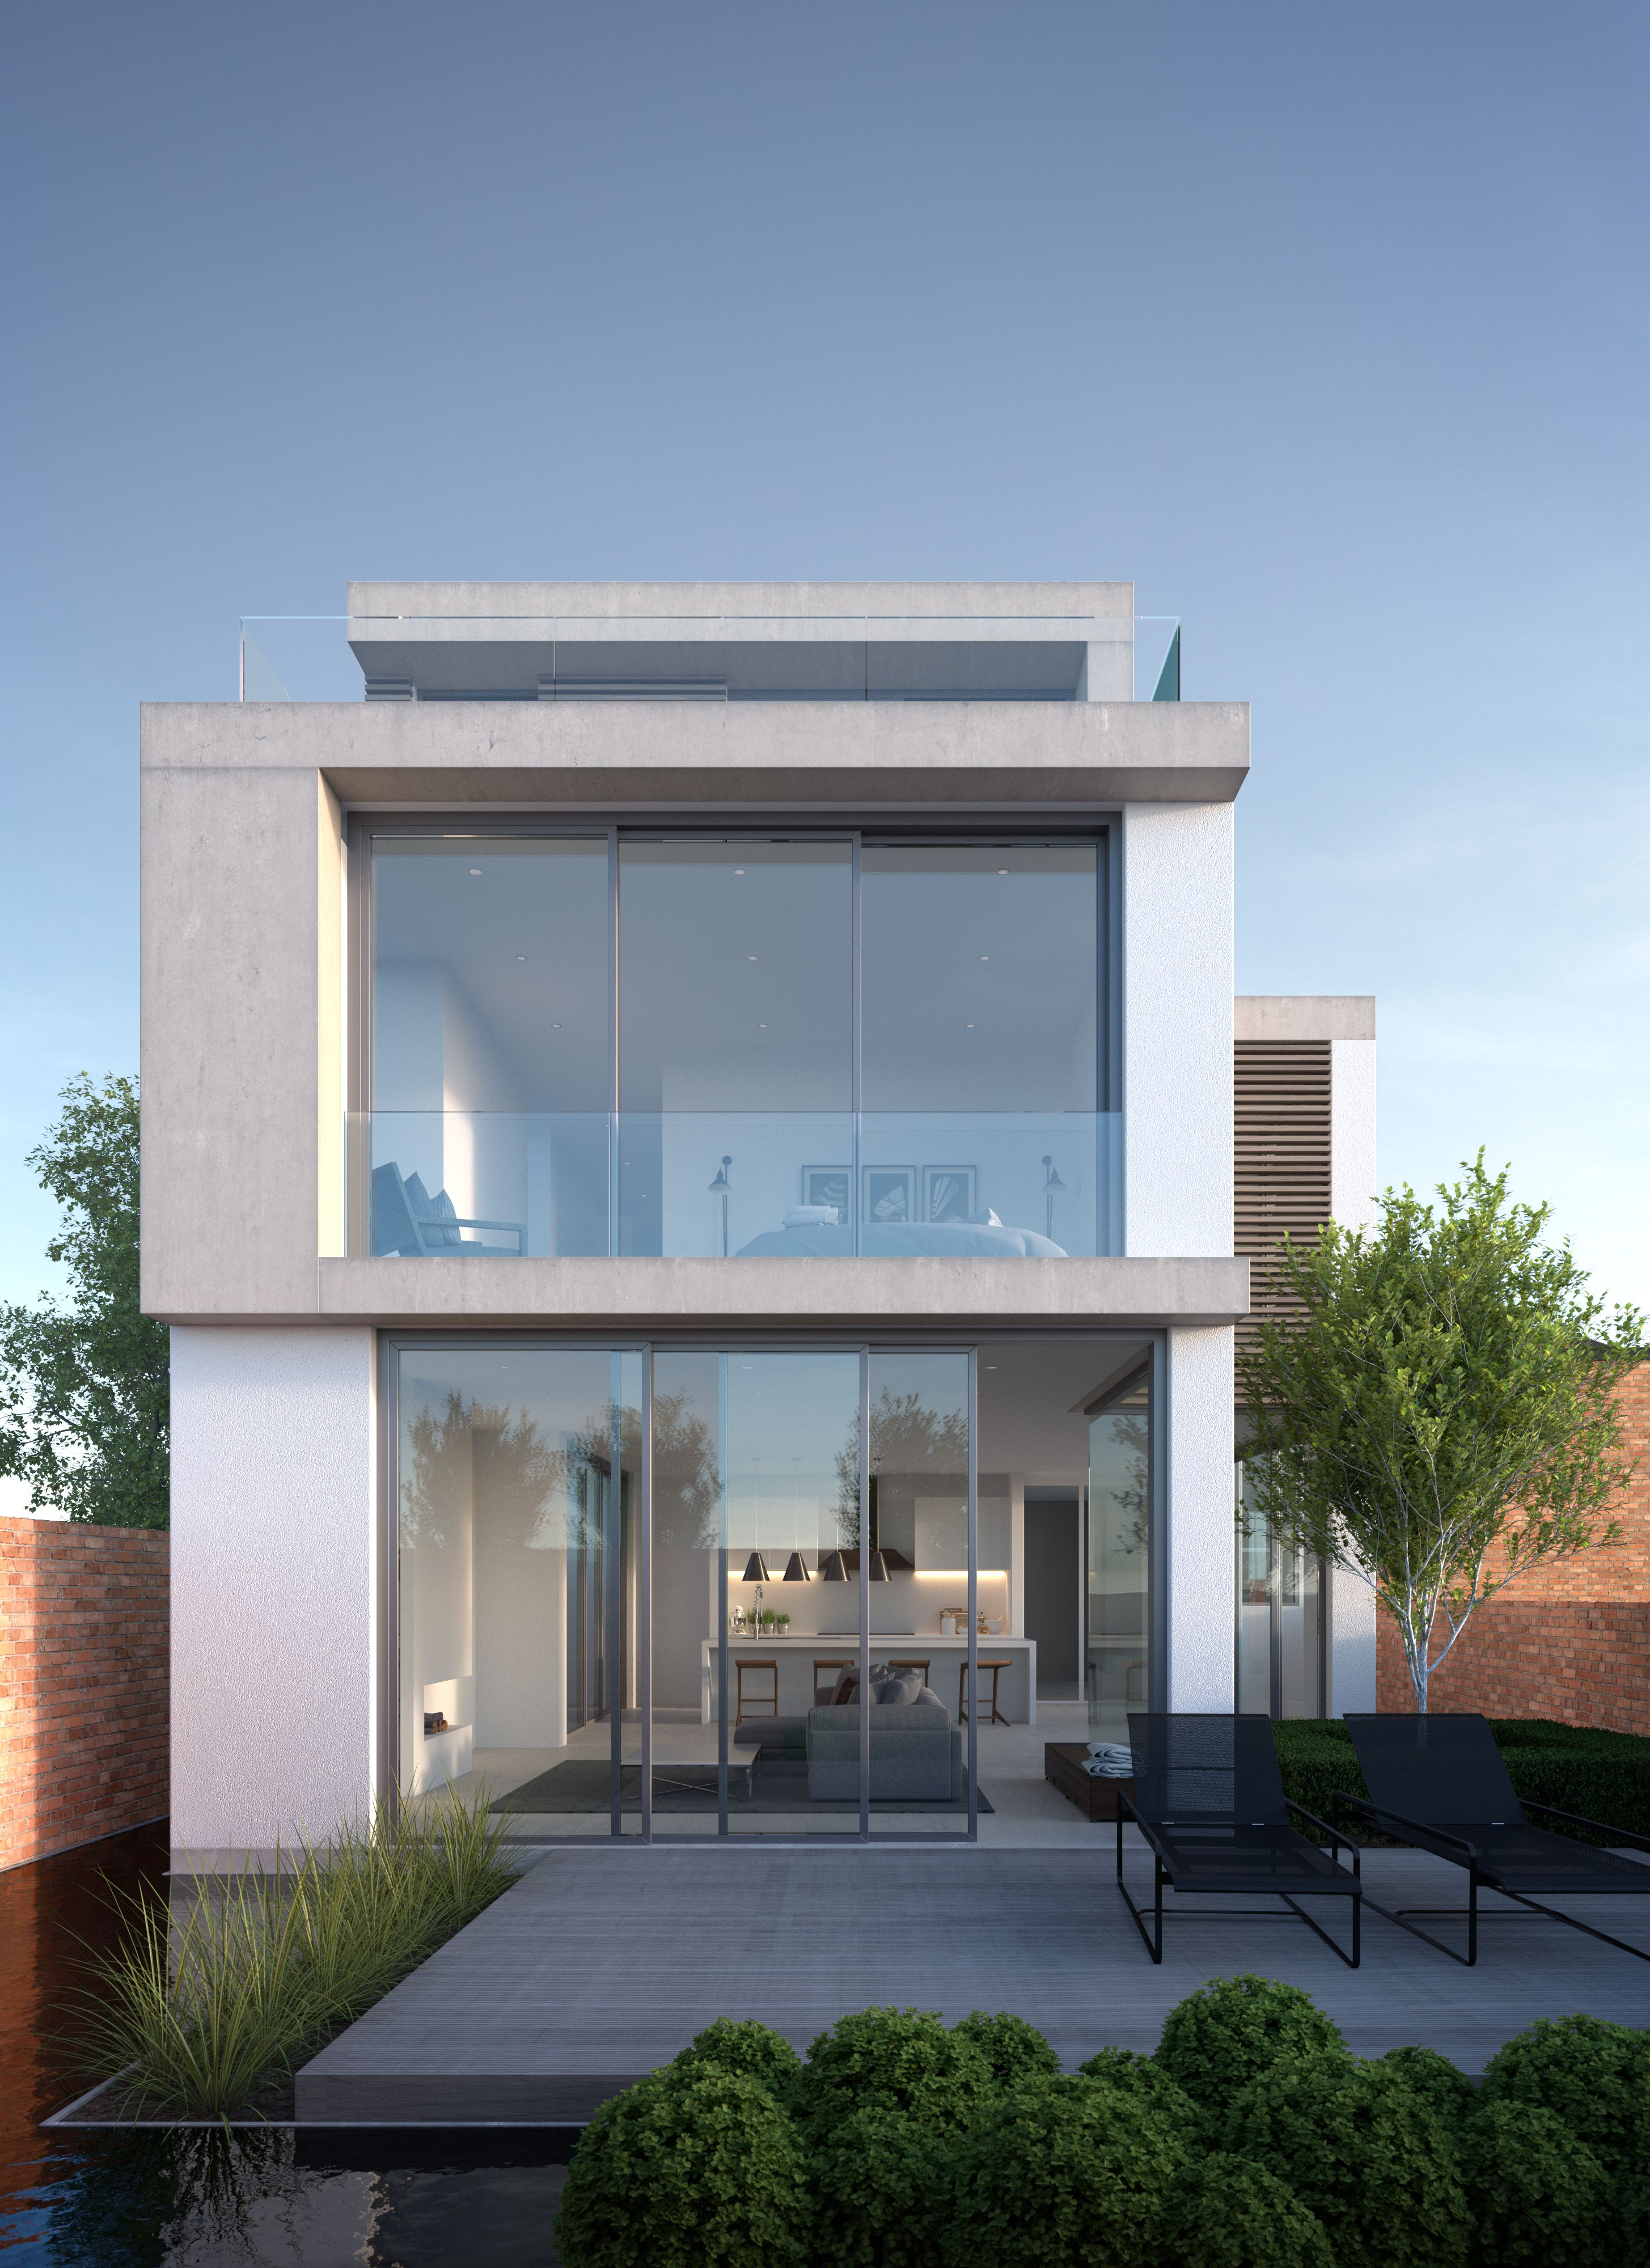 Annabelle tugby architects visual by matt clayton contemporary new build house 3 storey white render and concrete